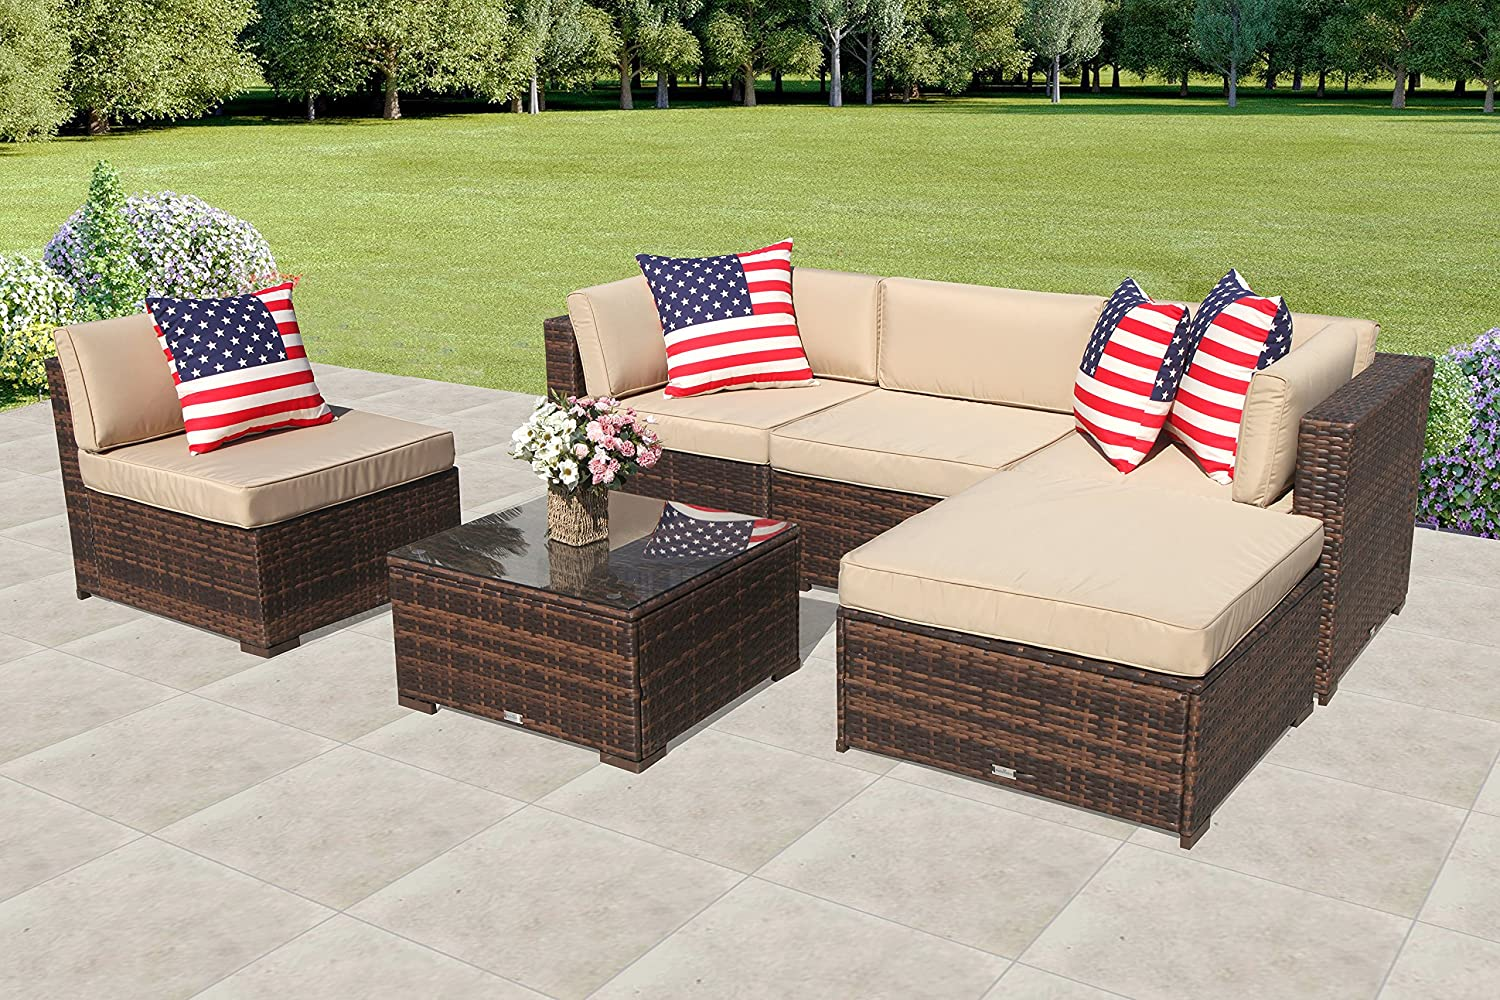 Patiorama outdoor patio sectional furniture 6 piece set all weather brown wicker sectional with beige seat cushions glass coffee table patio backyard